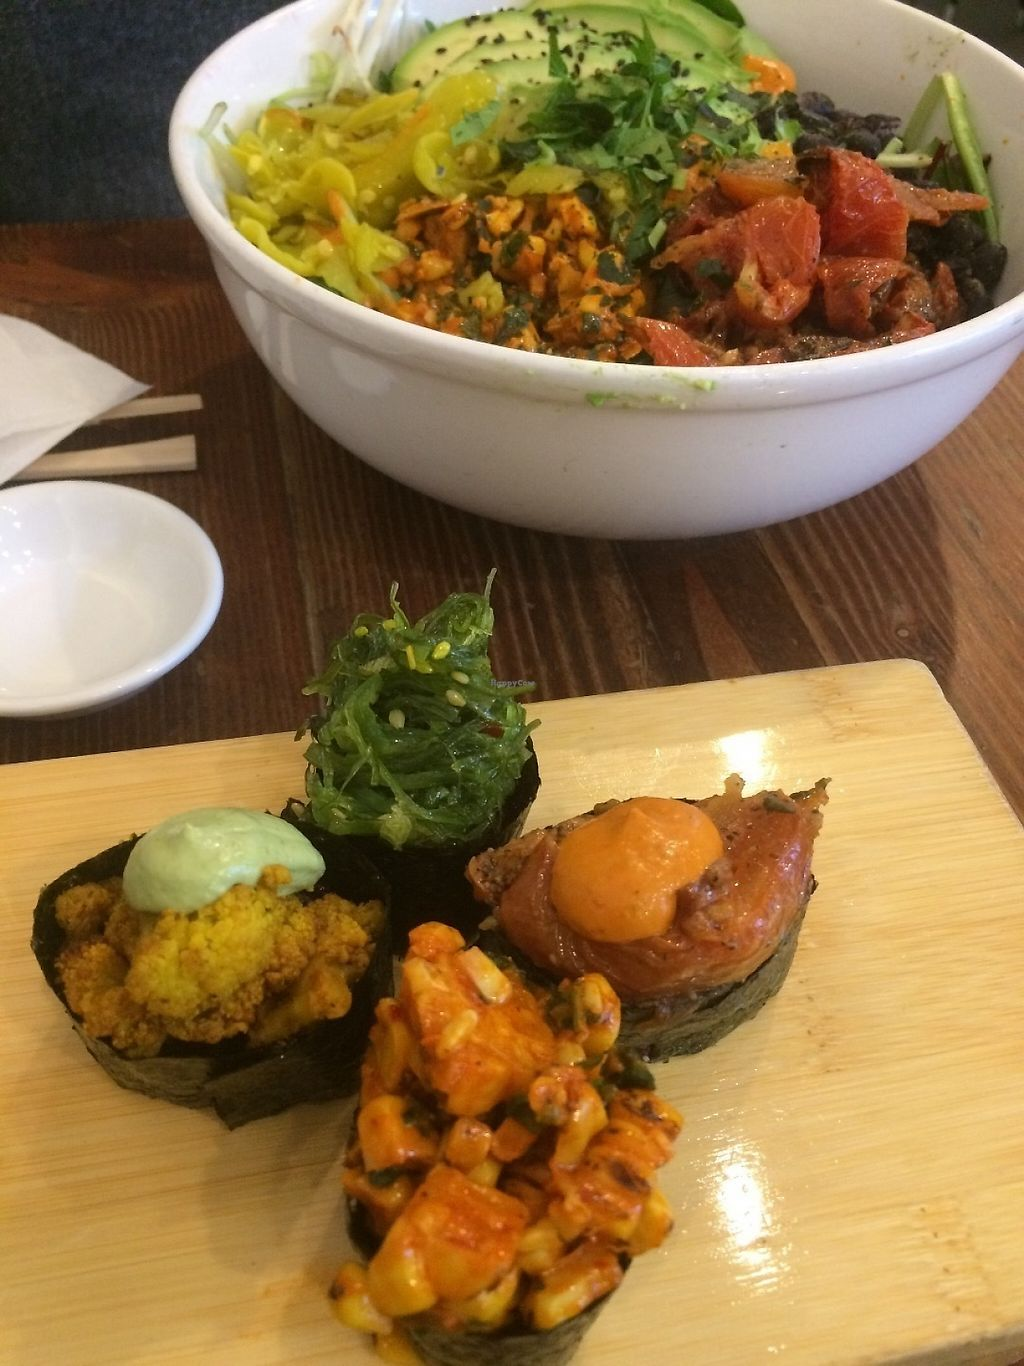 """Photo of Beyond Sushi - Midtown West  by <a href=""""/members/profile/MyGreenTongue"""">MyGreenTongue</a> <br/>Piece Sampler <br/> May 24, 2017  - <a href='/contact/abuse/image/54327/262142'>Report</a>"""